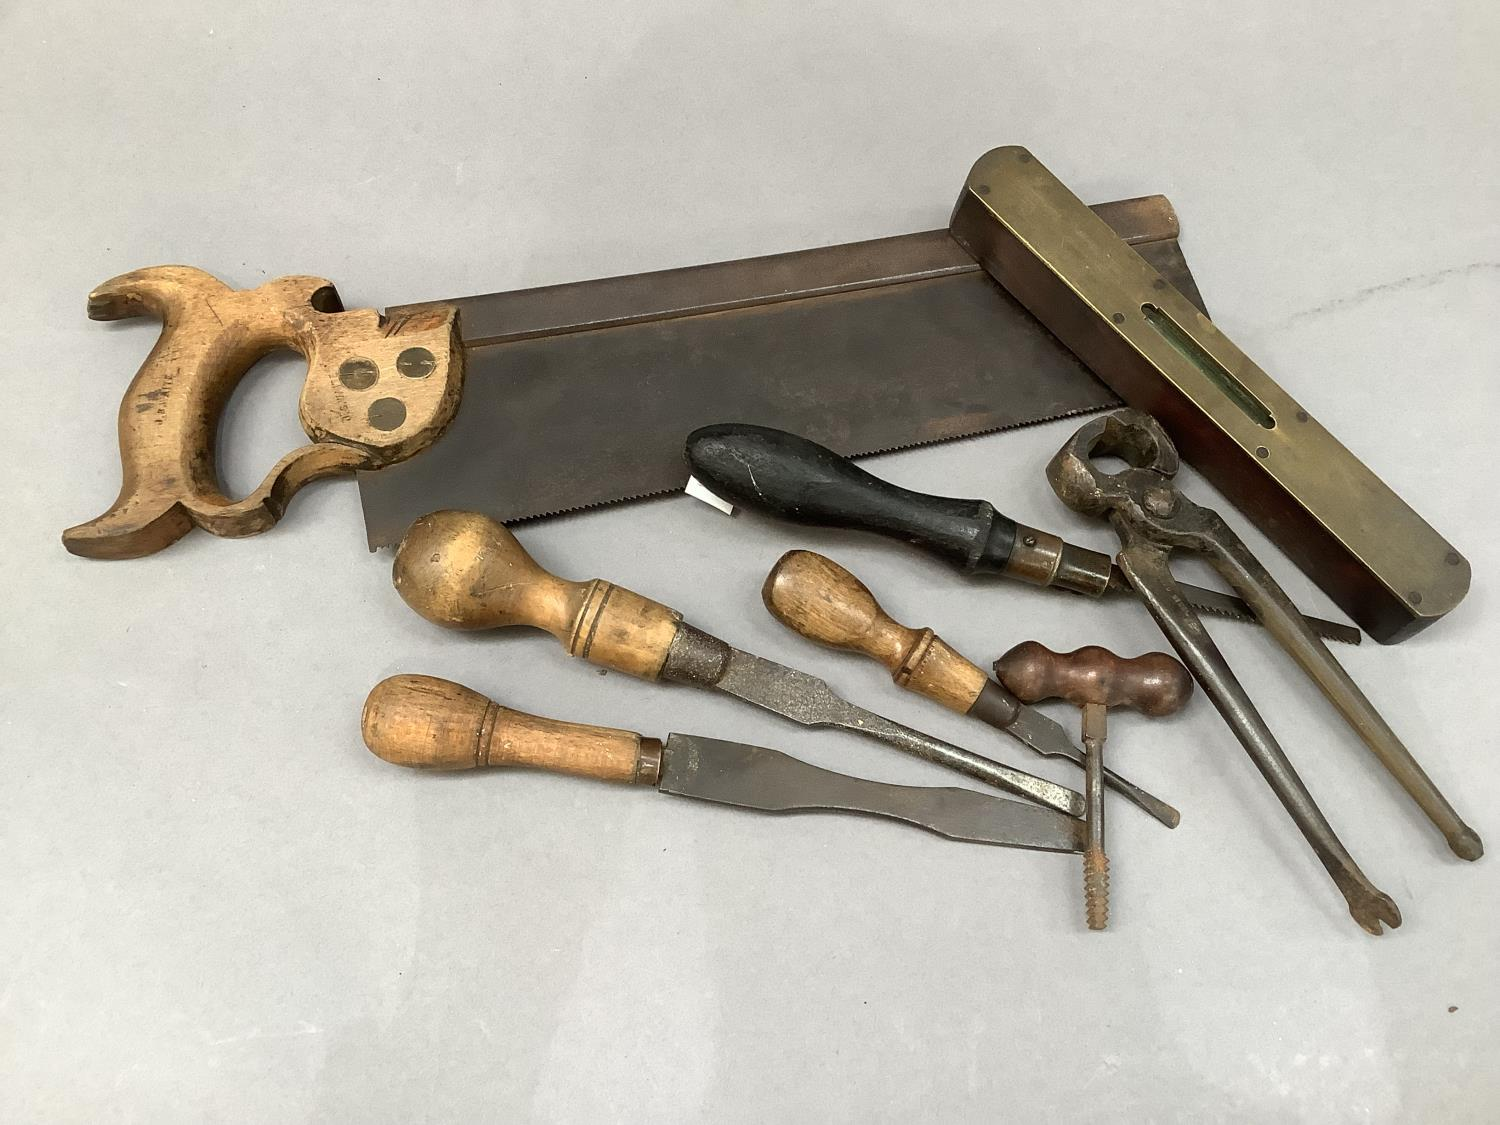 A quantity of vintage hand tools including saw, pliers, screwdrivers, level and hammer - Image 2 of 3